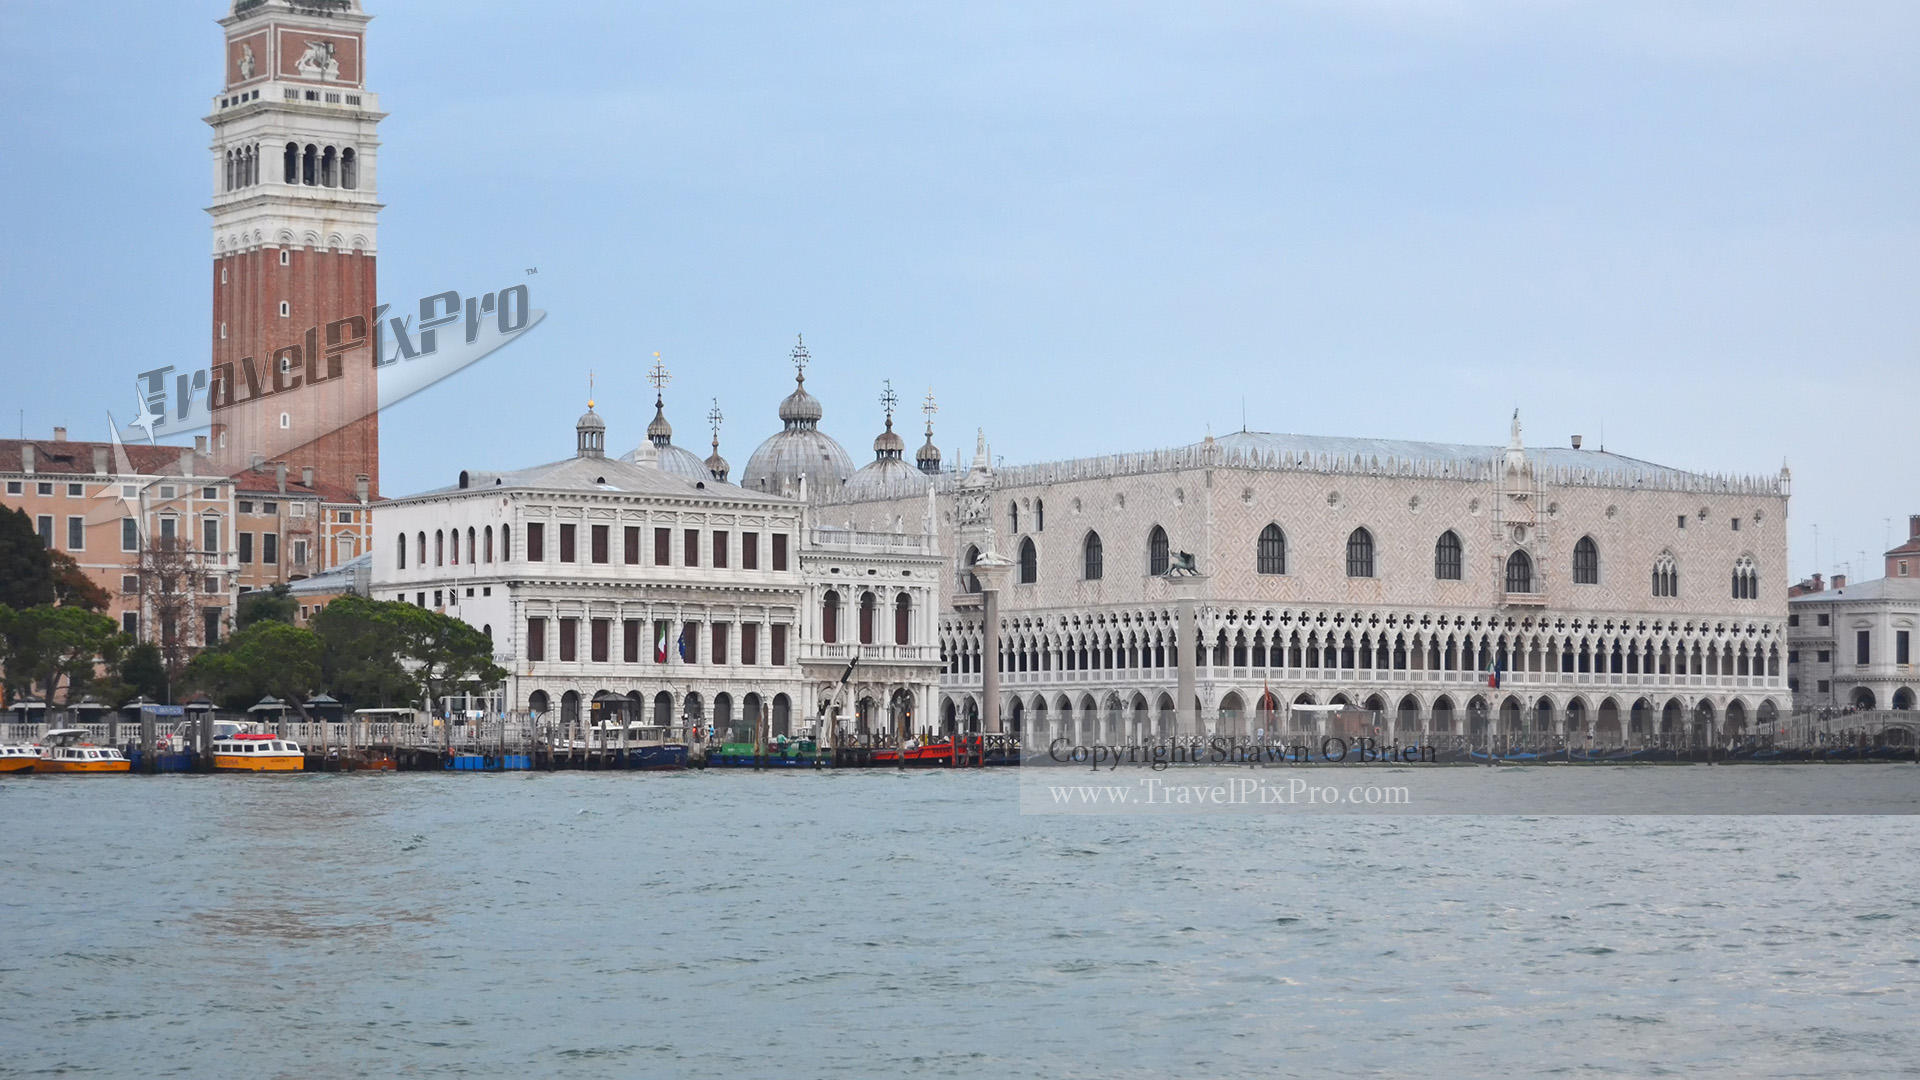 Doge's Palace from the Lagoon